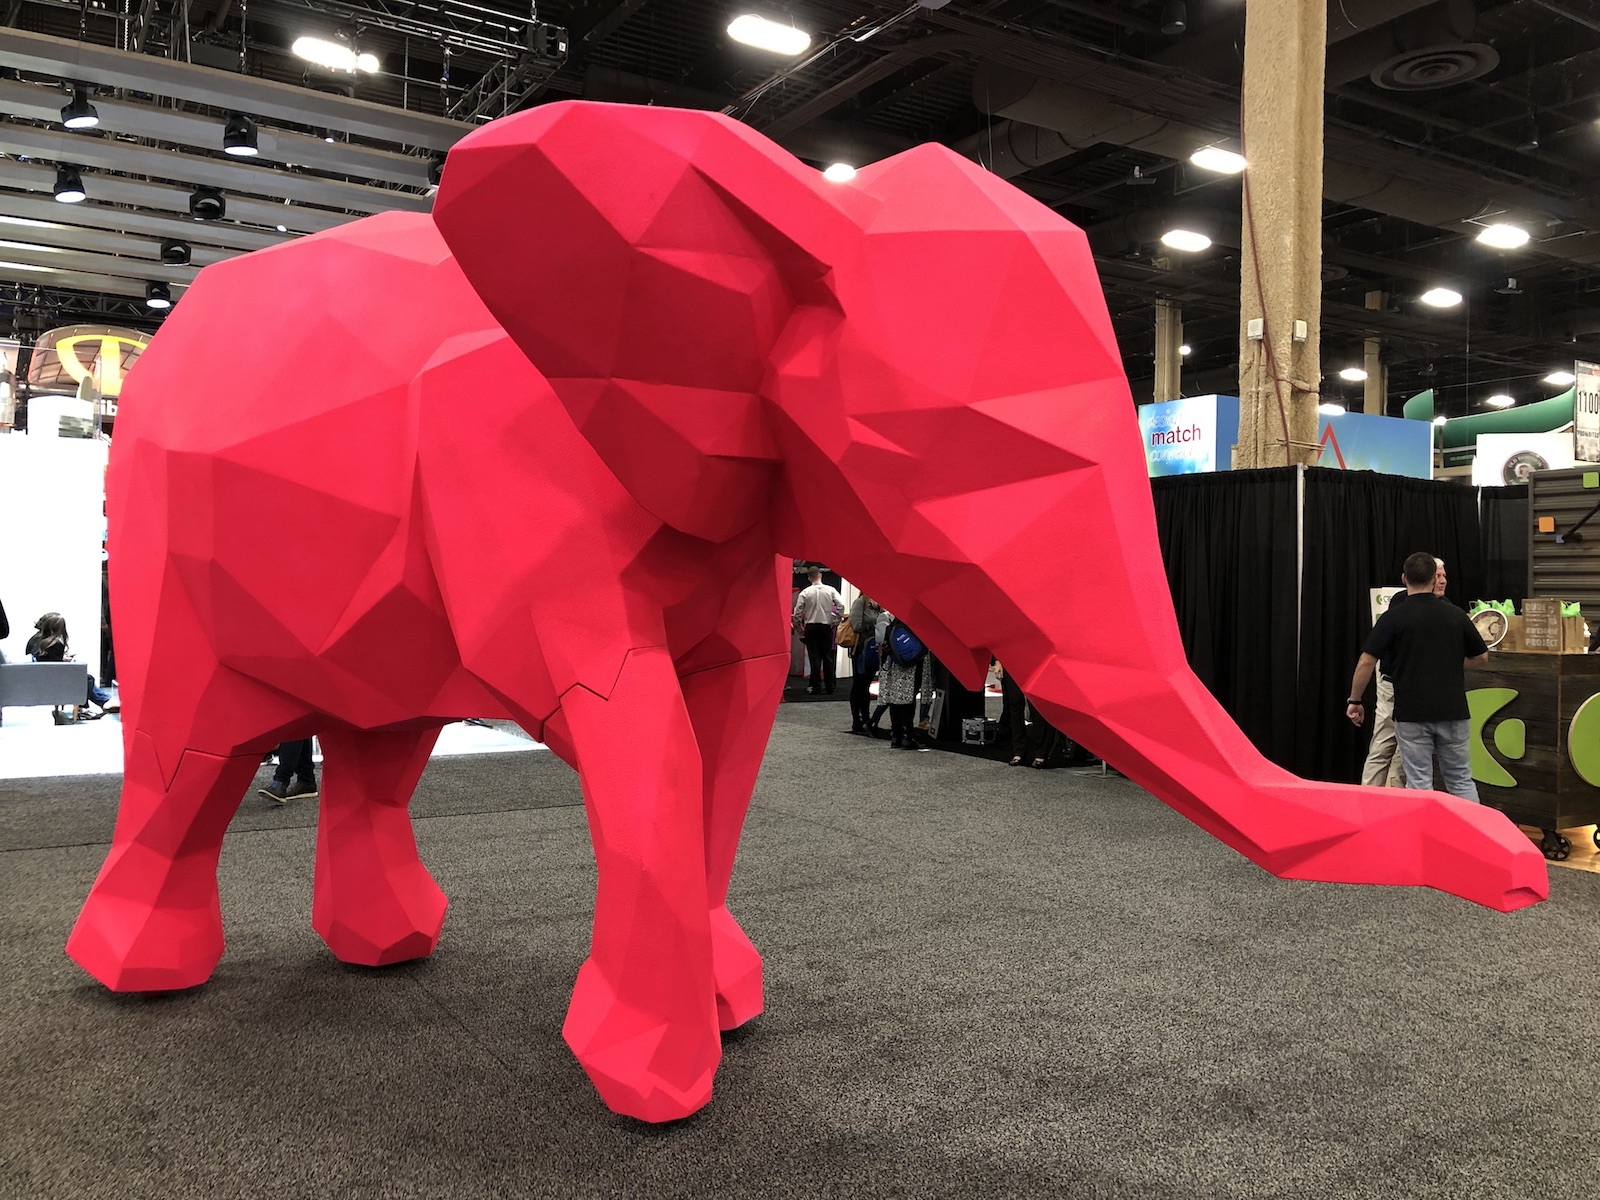 giant pink elephant at ExhibitorLive 2019